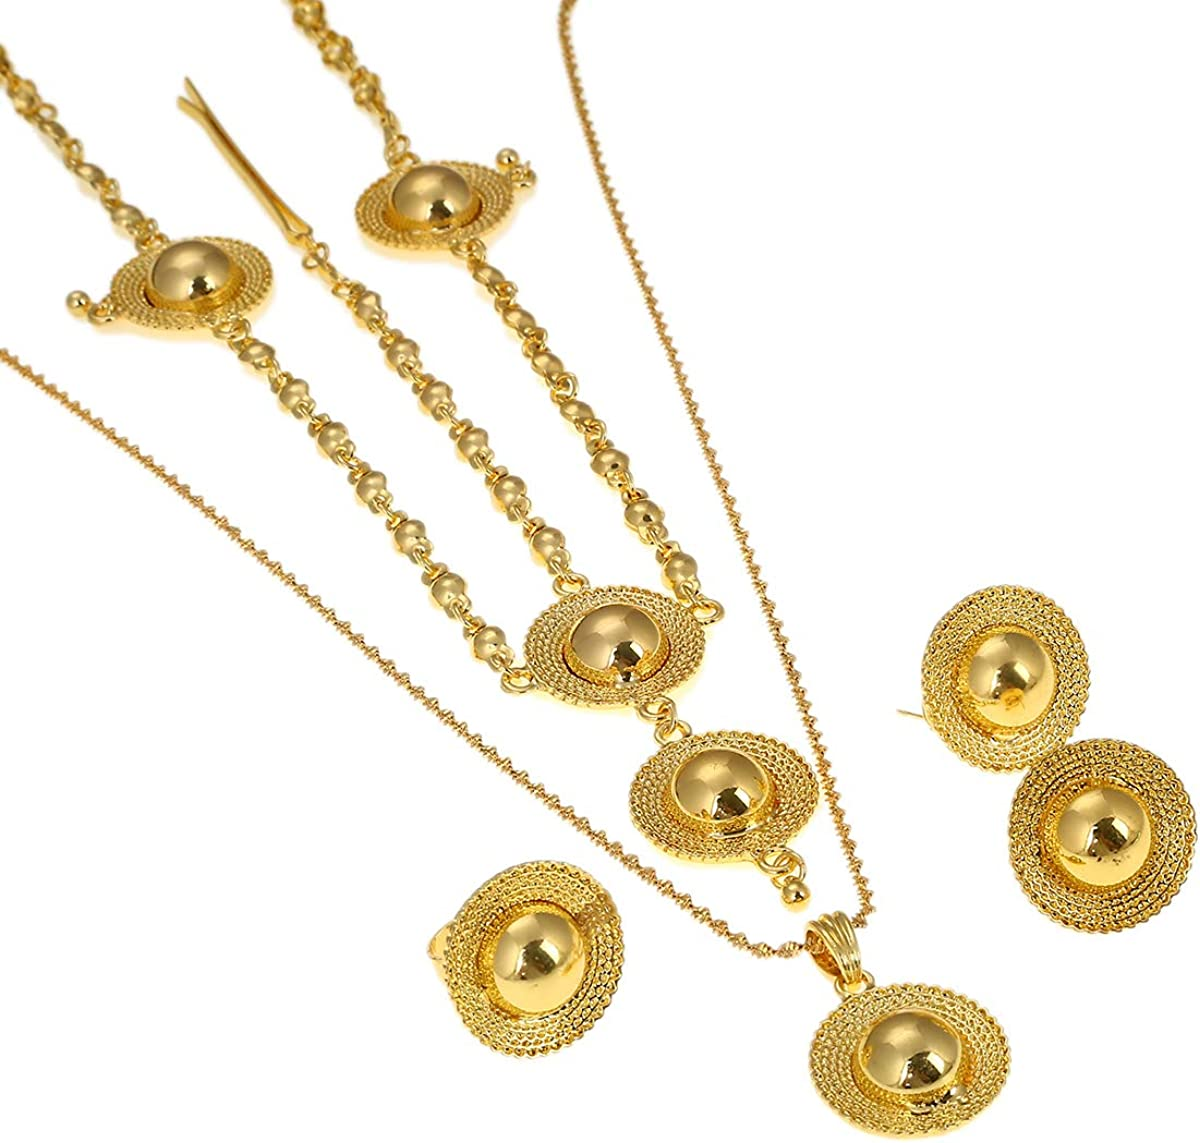 Ethiopian Jewelry Sets 24k Gold Plated 4pcs Hair Chain/Earrings/Ring/Pendant Chain Eritrean Women Jewelry (Gold)